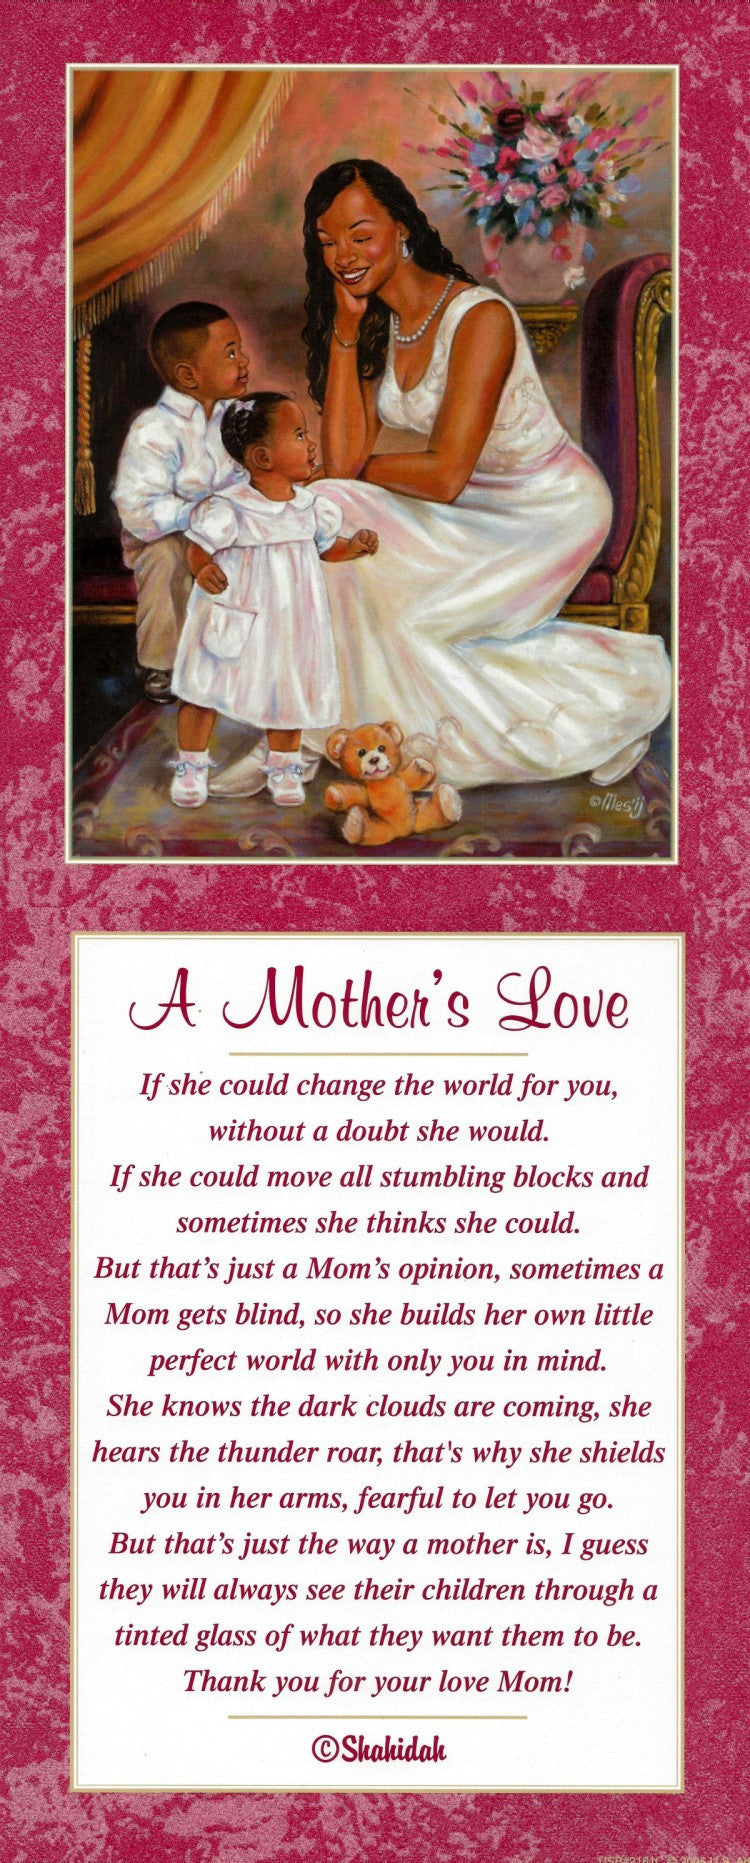 A Mother's Love by Mesij and Shahidah